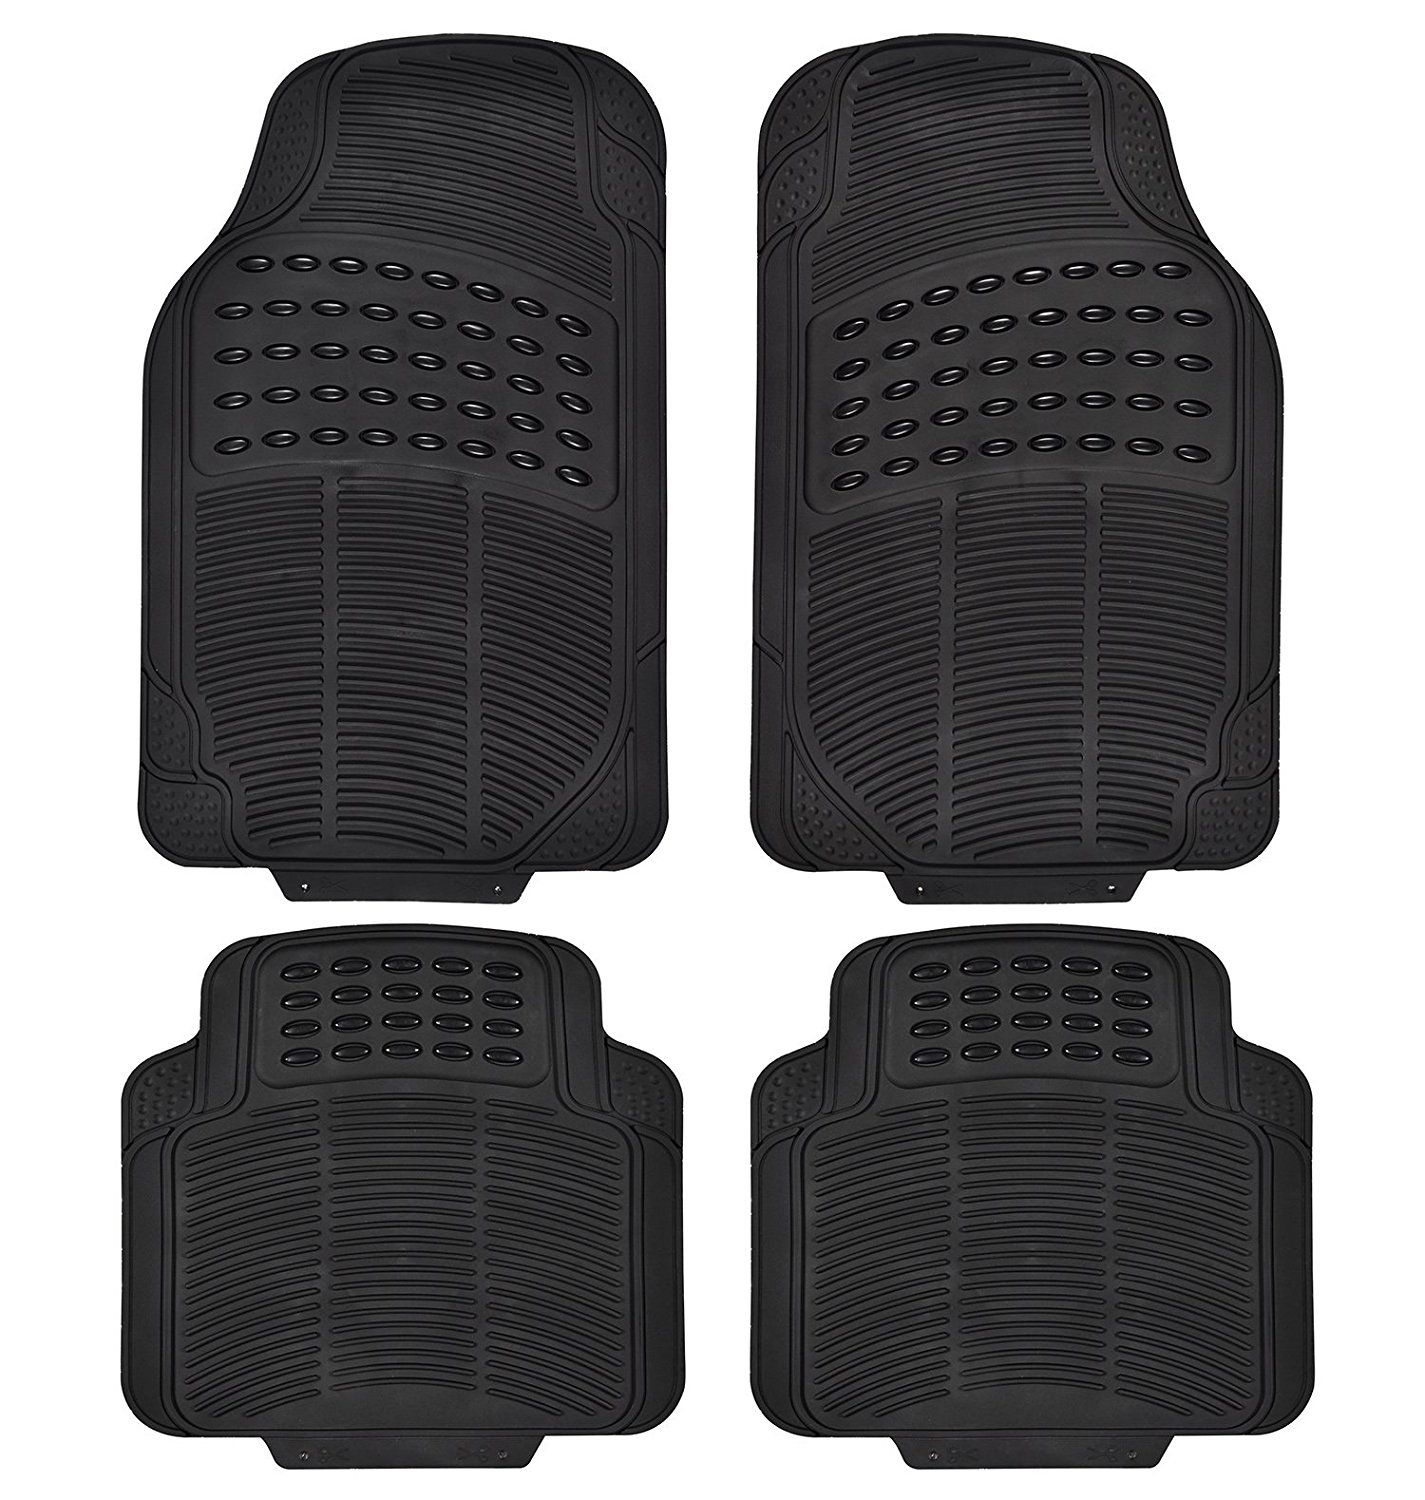 Amazon Com Heavy Duty Rubber Floor Mats For Cars Floor Rear Rubber Mats All Weather Protection Universal Car Rubber Floor Mats Car Floor Mats Rubber Flooring